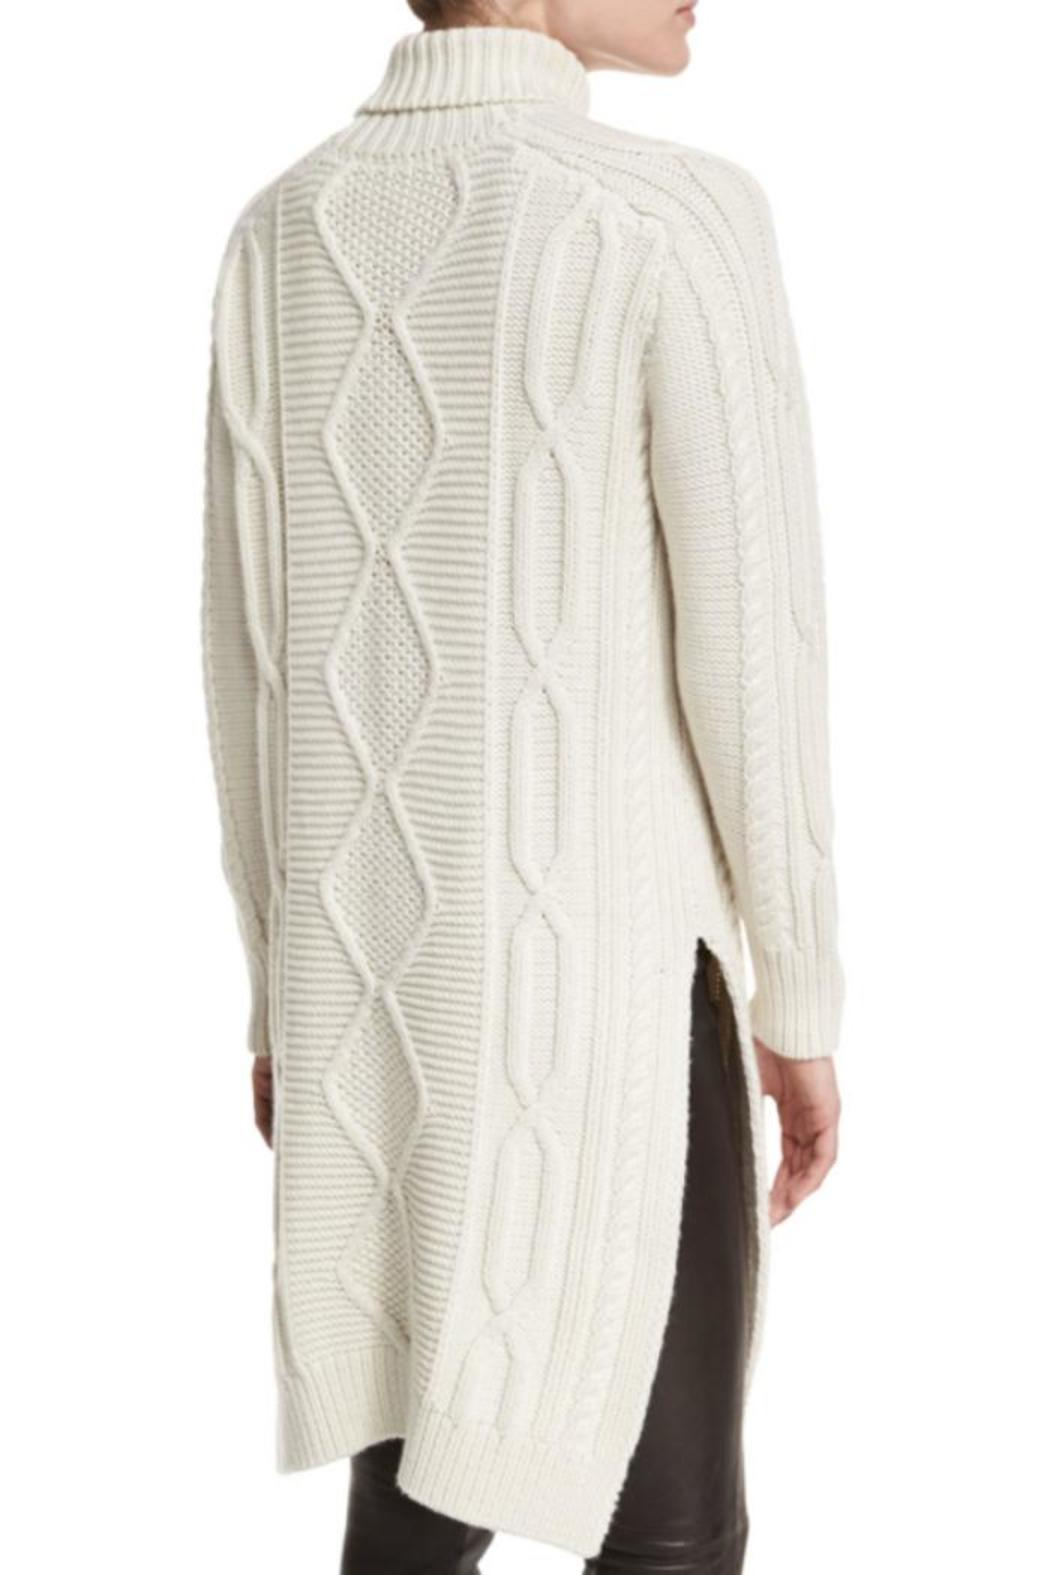 Derek Lam 10 Crosby Turtleneck Sweater Dress - Front Full Image